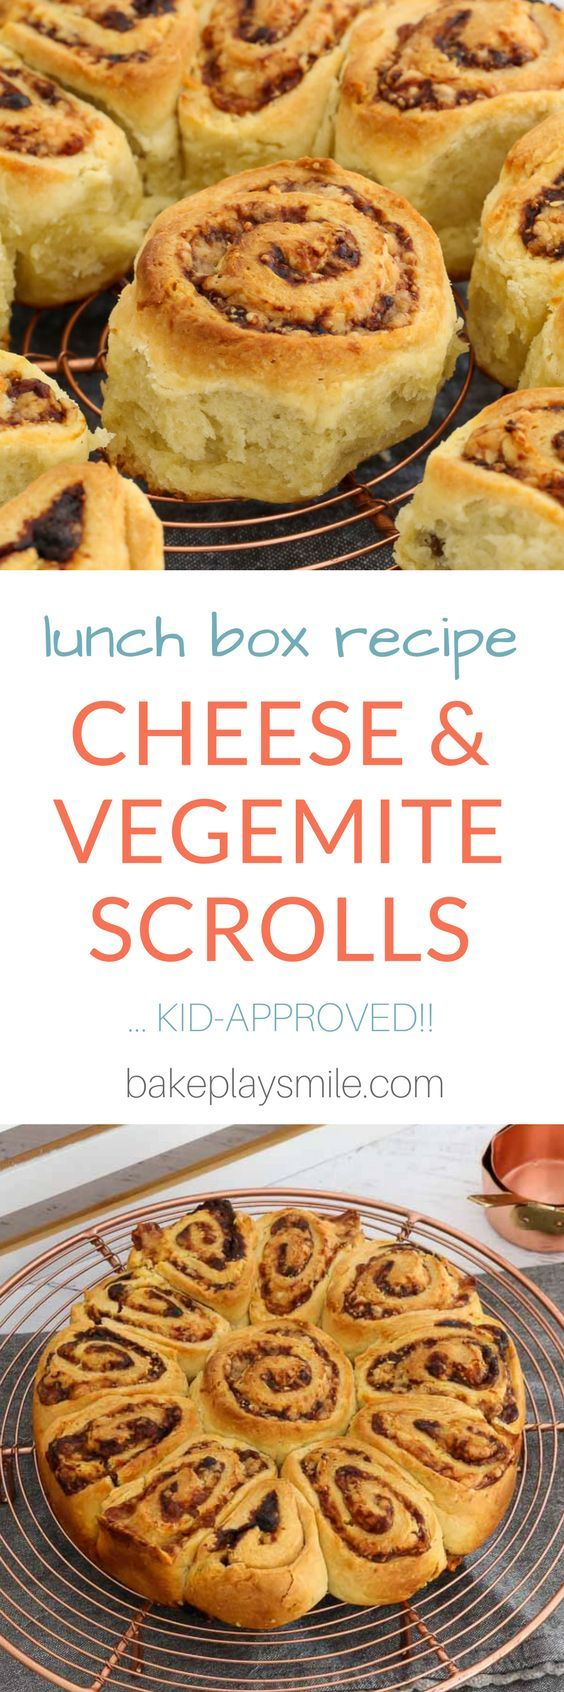 Cheesymite Scrolls made the perfect lunch box snack! Filled with Vegemite and cheese, they��re sure to be a family favourite. Watch the recipe video to see how easy to make they really are!